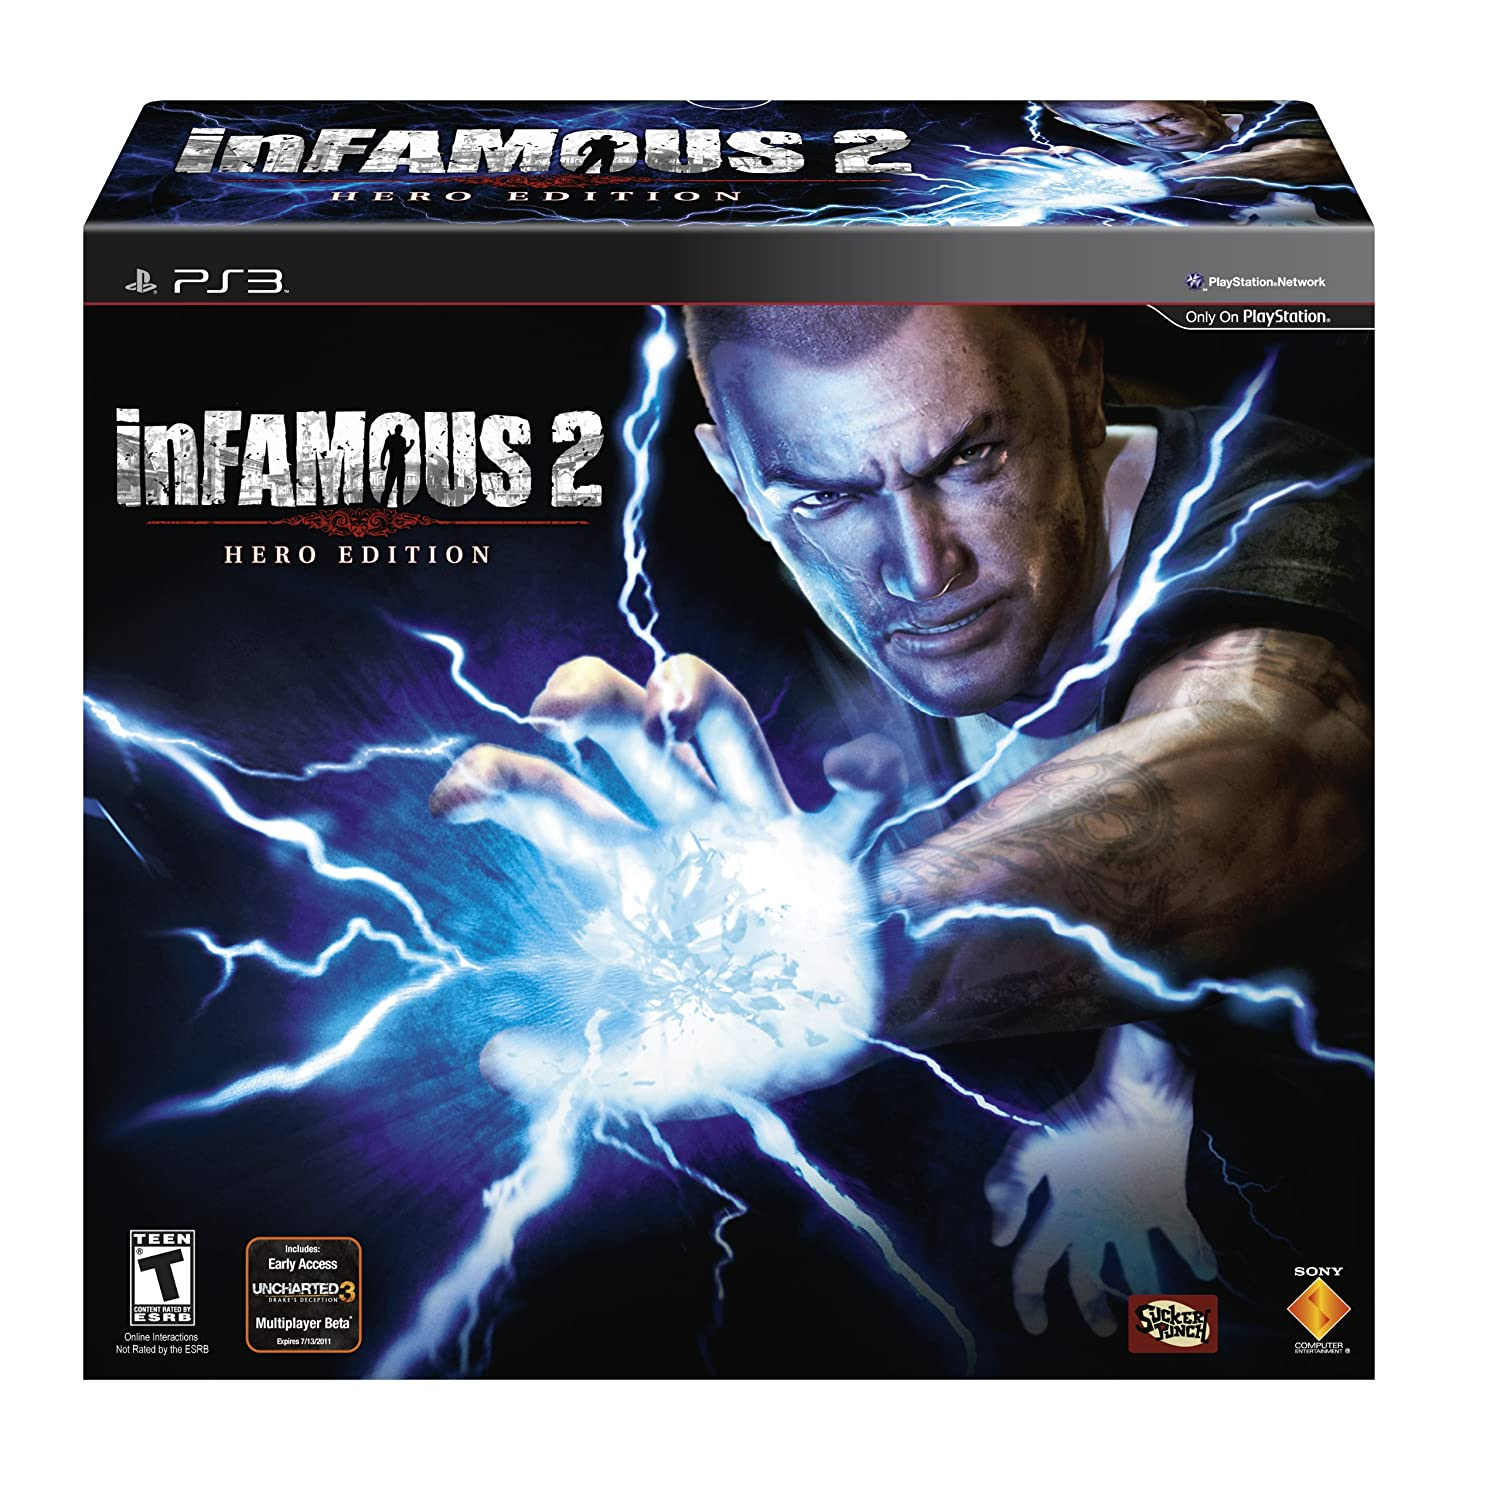 Game, Games, Video Game, Video Games, Playstation, Playstation 3, PS3